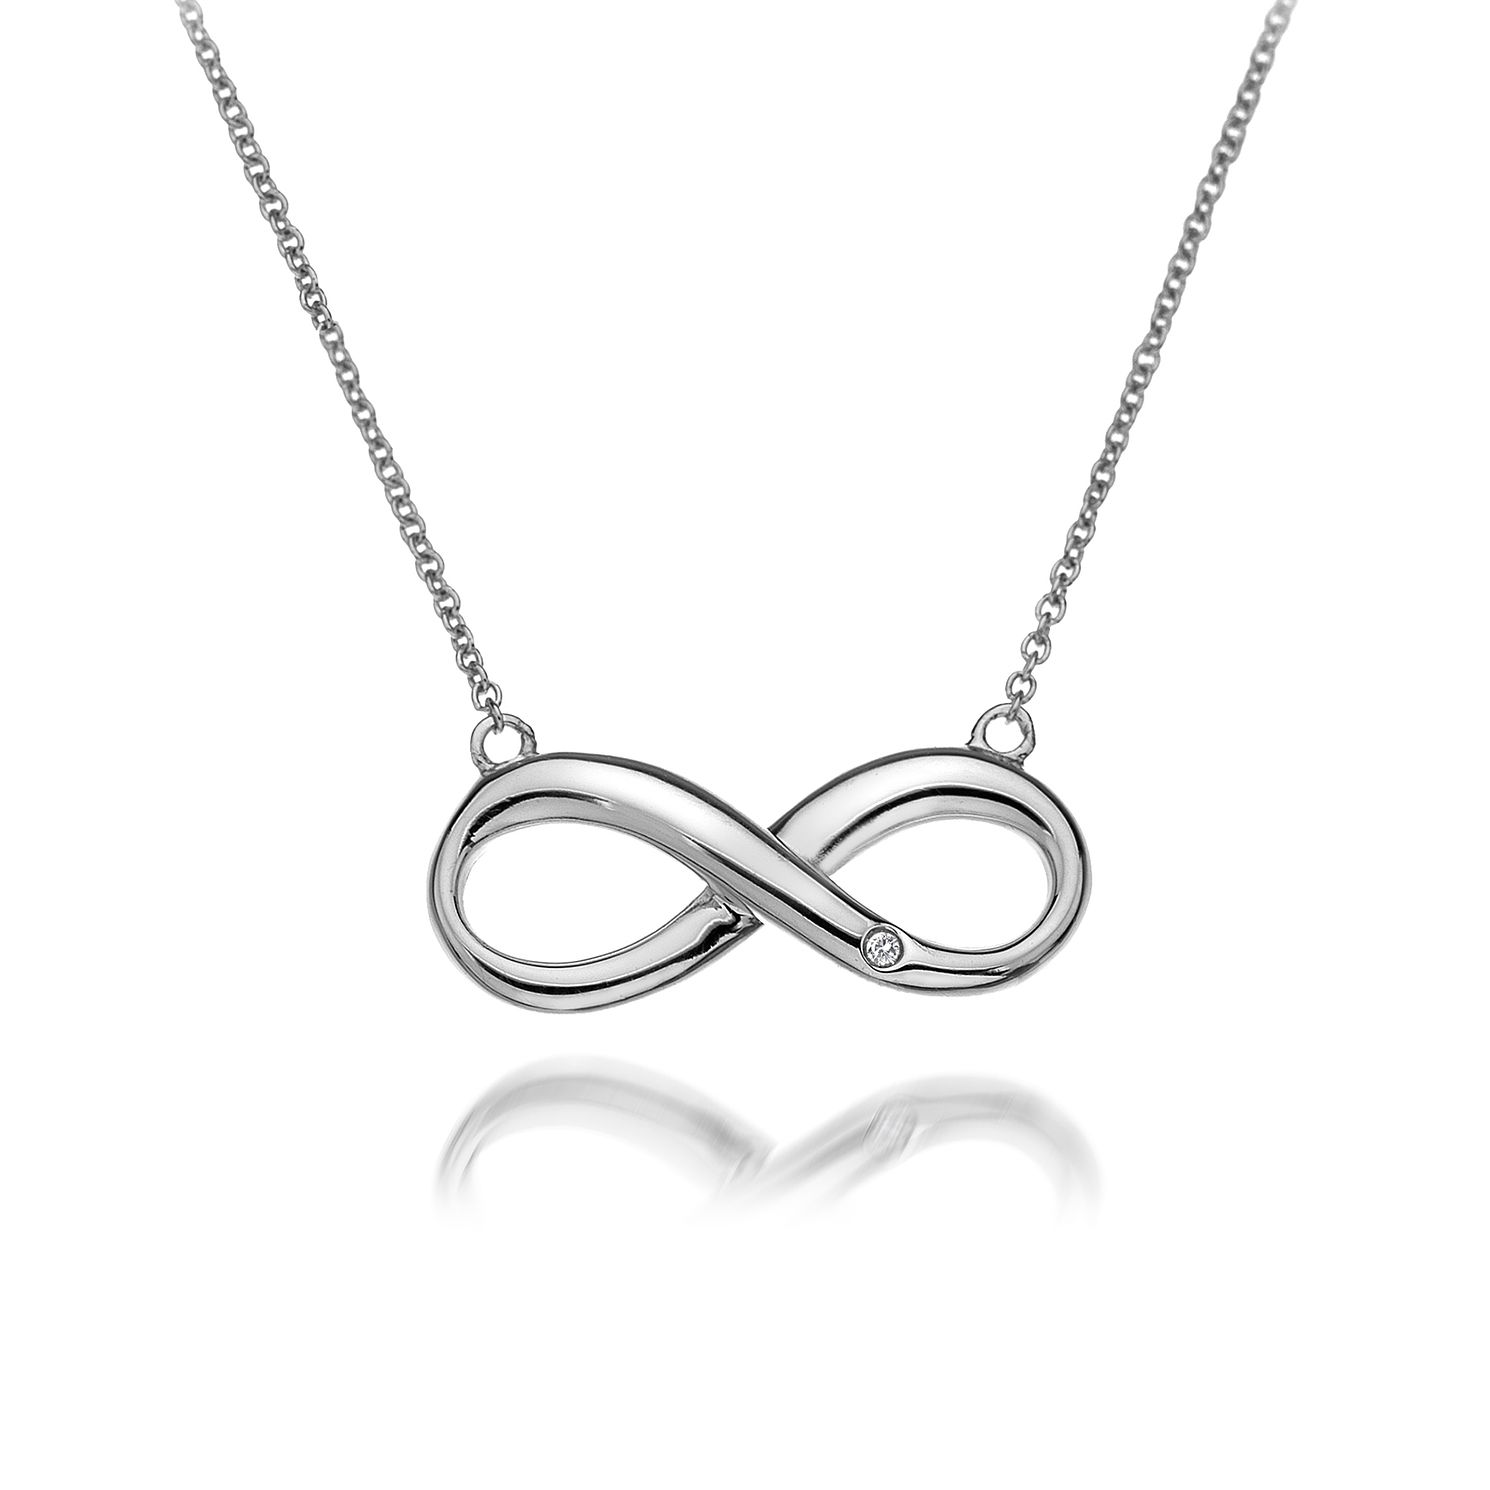 Hot Diamonds Sterling Silver Fresh Infinity Necklace - Product number 4587103